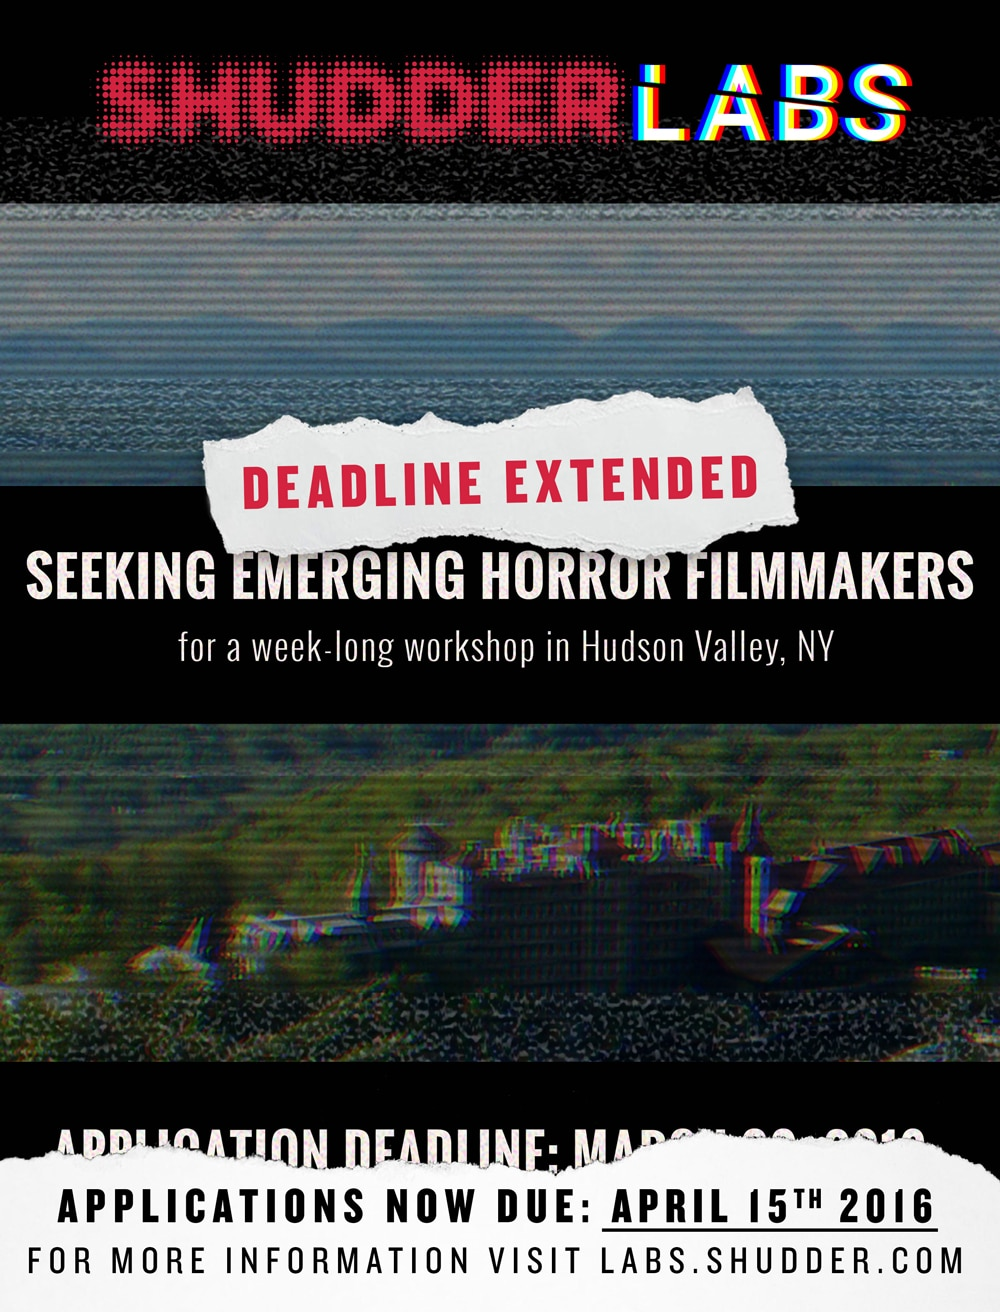 shudderlabs new - Shudder Labs Extends Submission Deadline and Reveals Masters-in-Residence